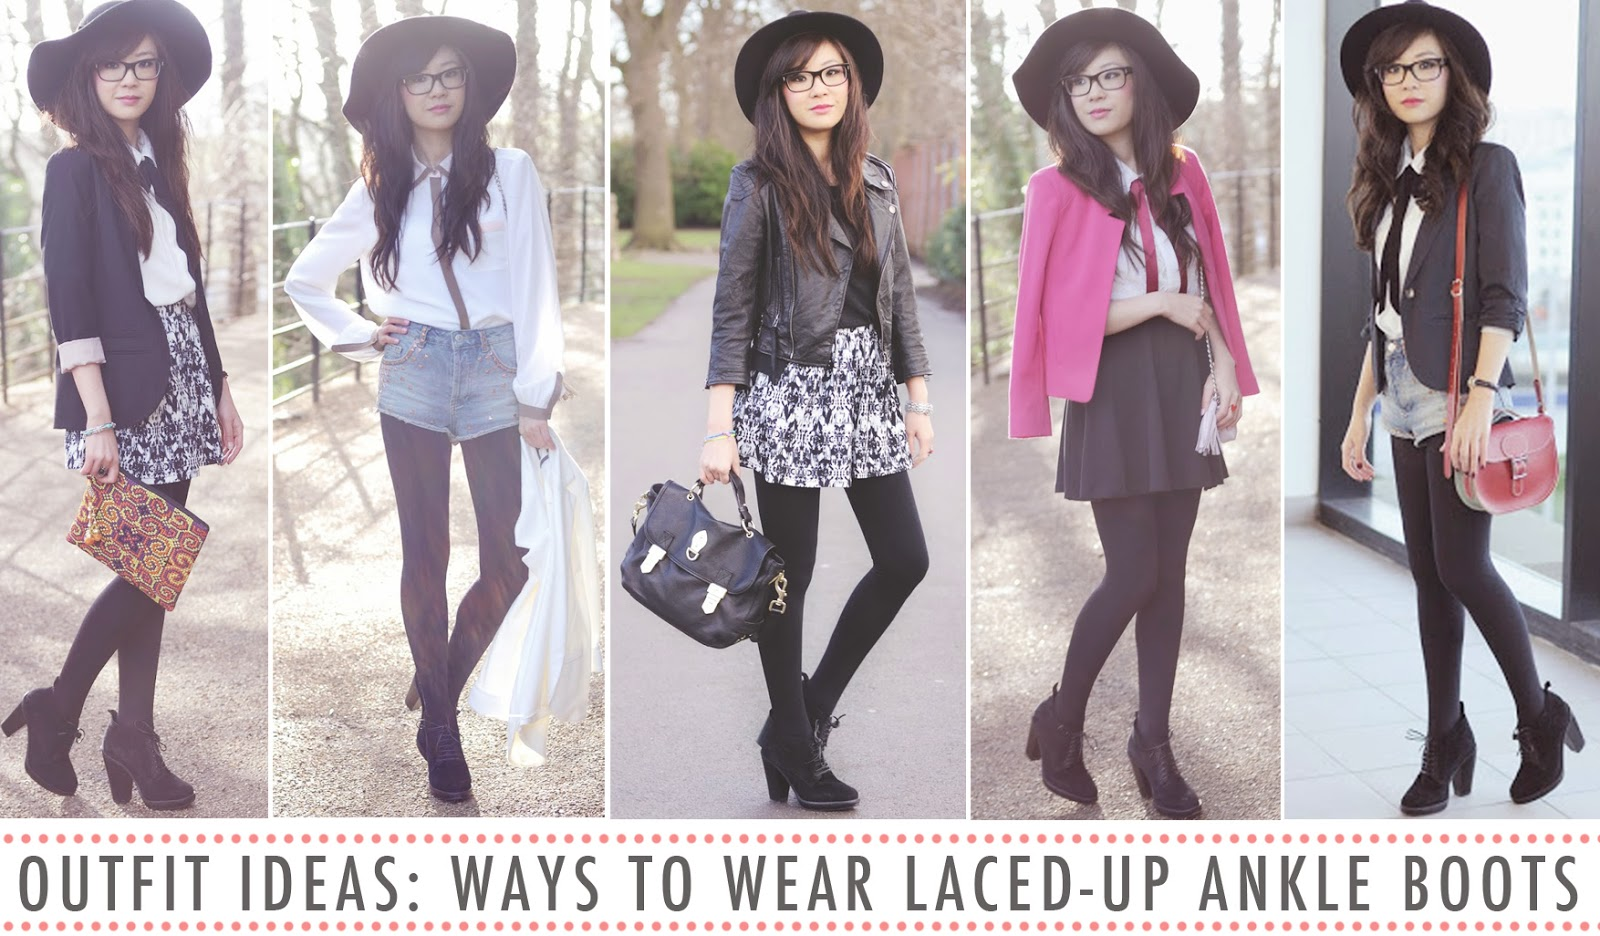 outfit ideas from fashion blogger, what to wear with laced up ankle boots